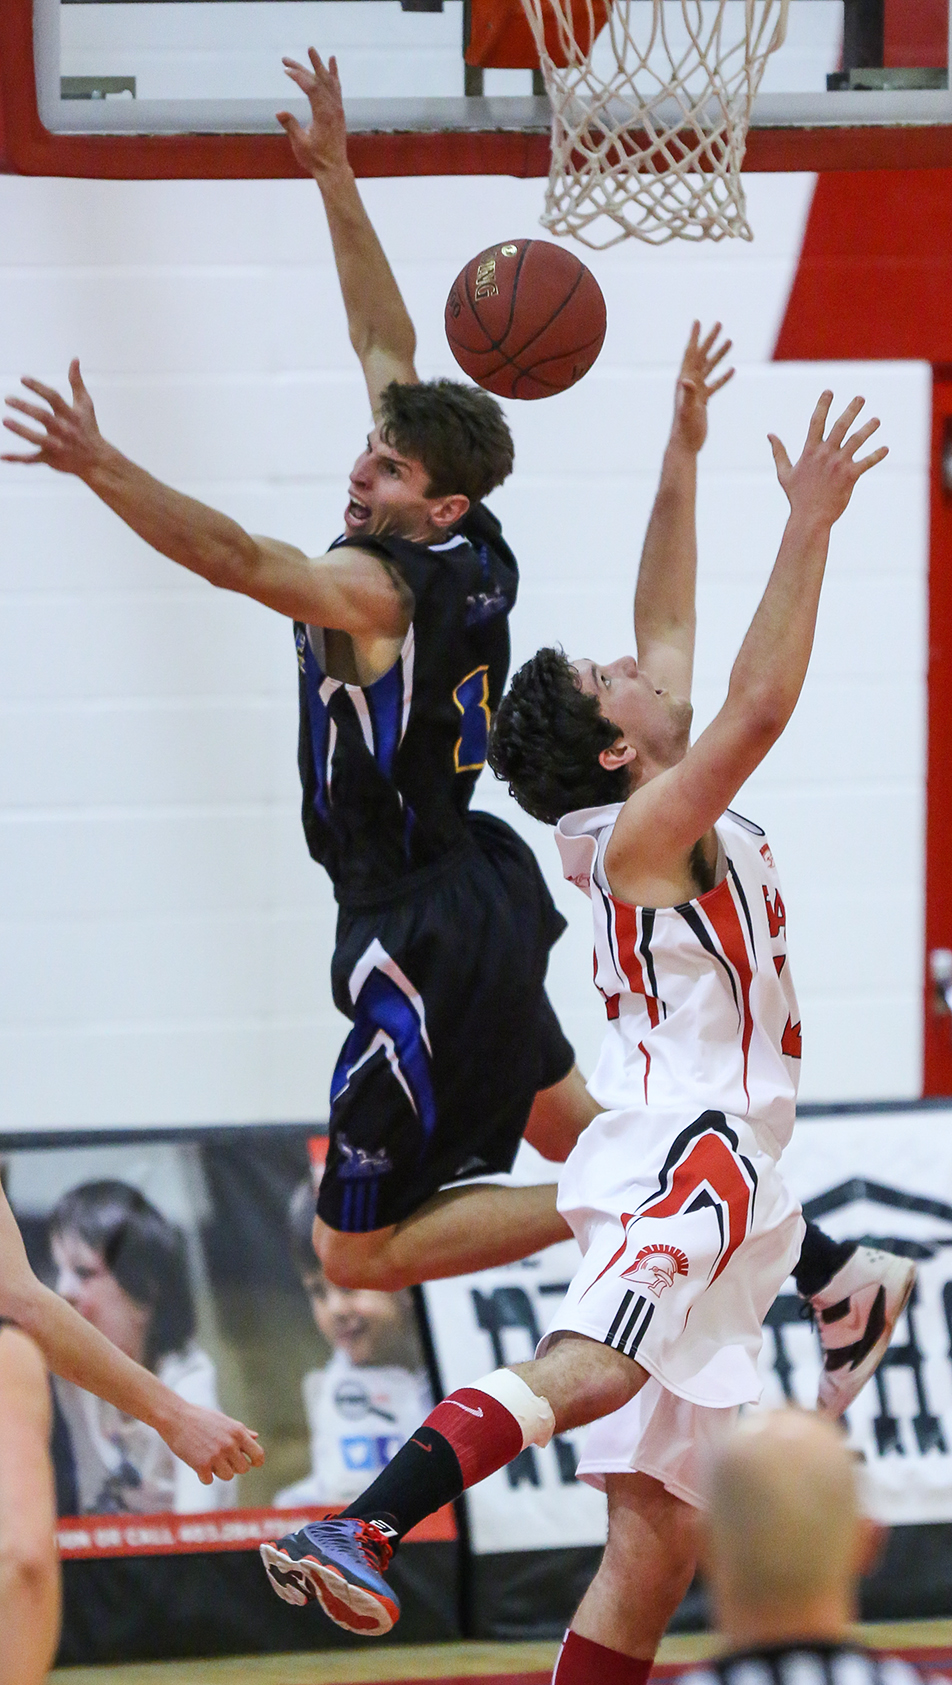 Blocked AgainSAIT Trojans Colten Murray, right, and King's Eagles Ty Gaertner, jump to grab the ball during men's basketball action at the SAIT gymnasium in Calgary on Friday, Jan. 17, 2014. The Trojans defeated the Eagles 83-72. (Photo by Courtney Blatch/The Press)